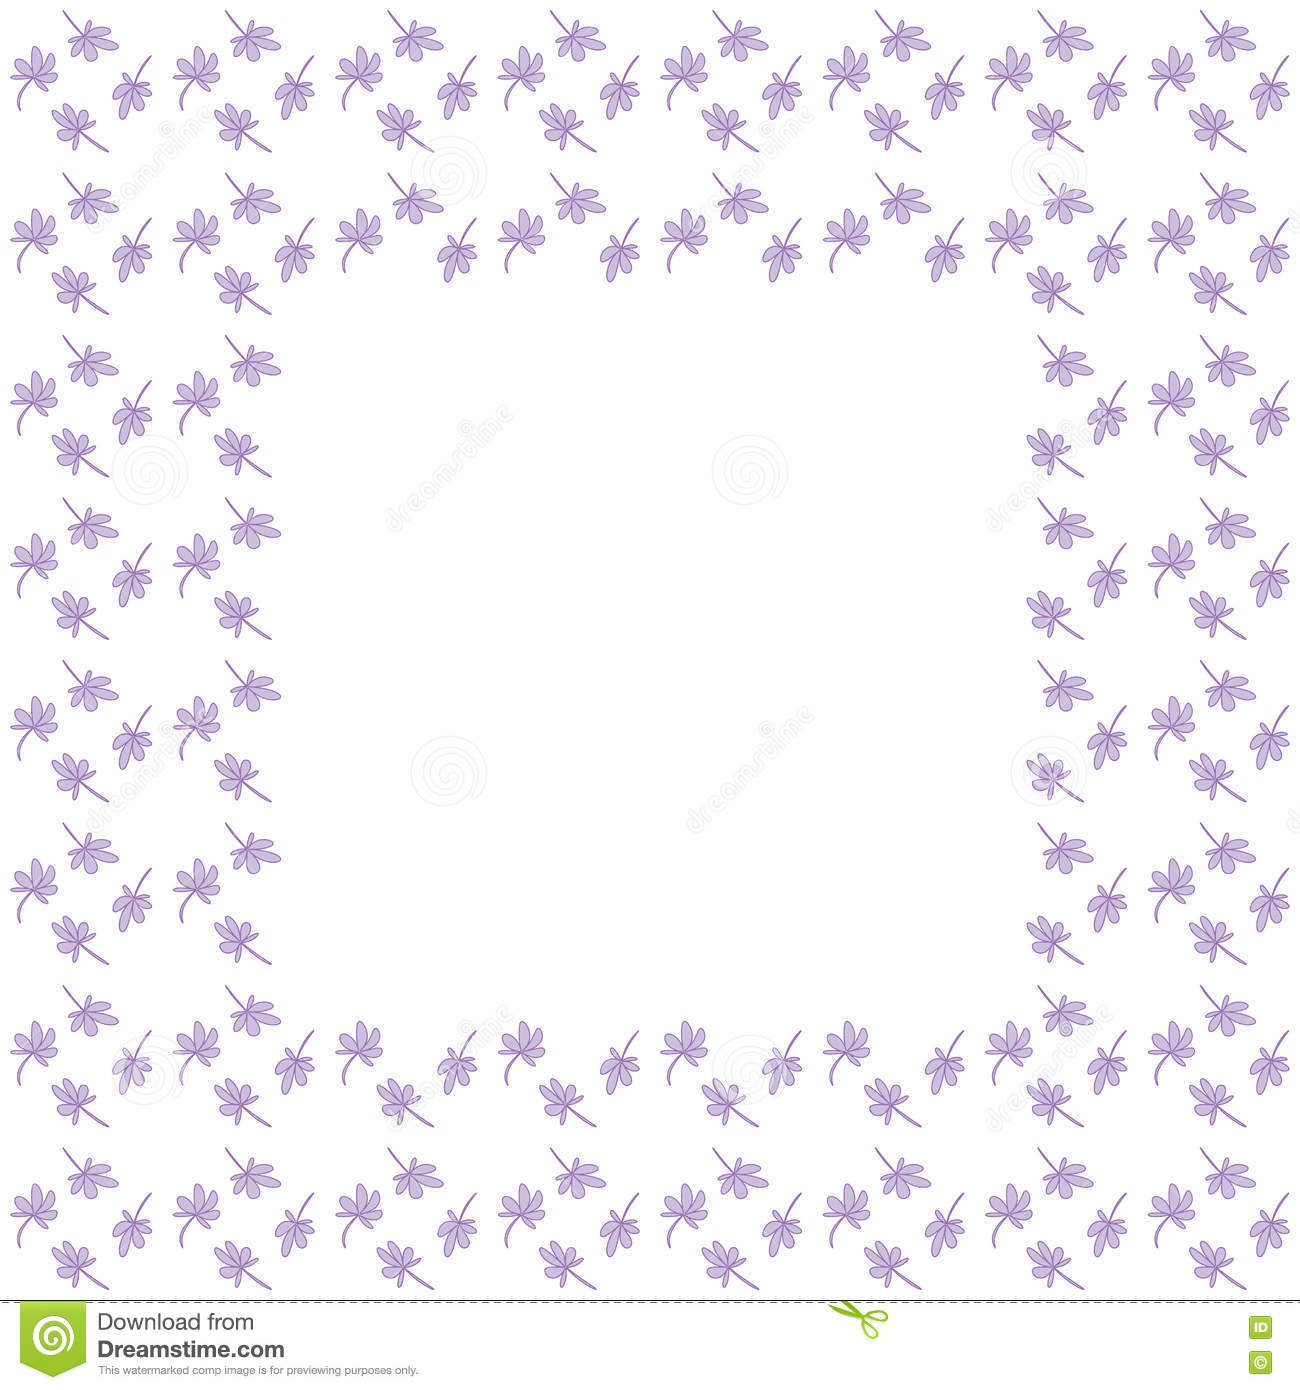 Cute background border frame with leaves grid